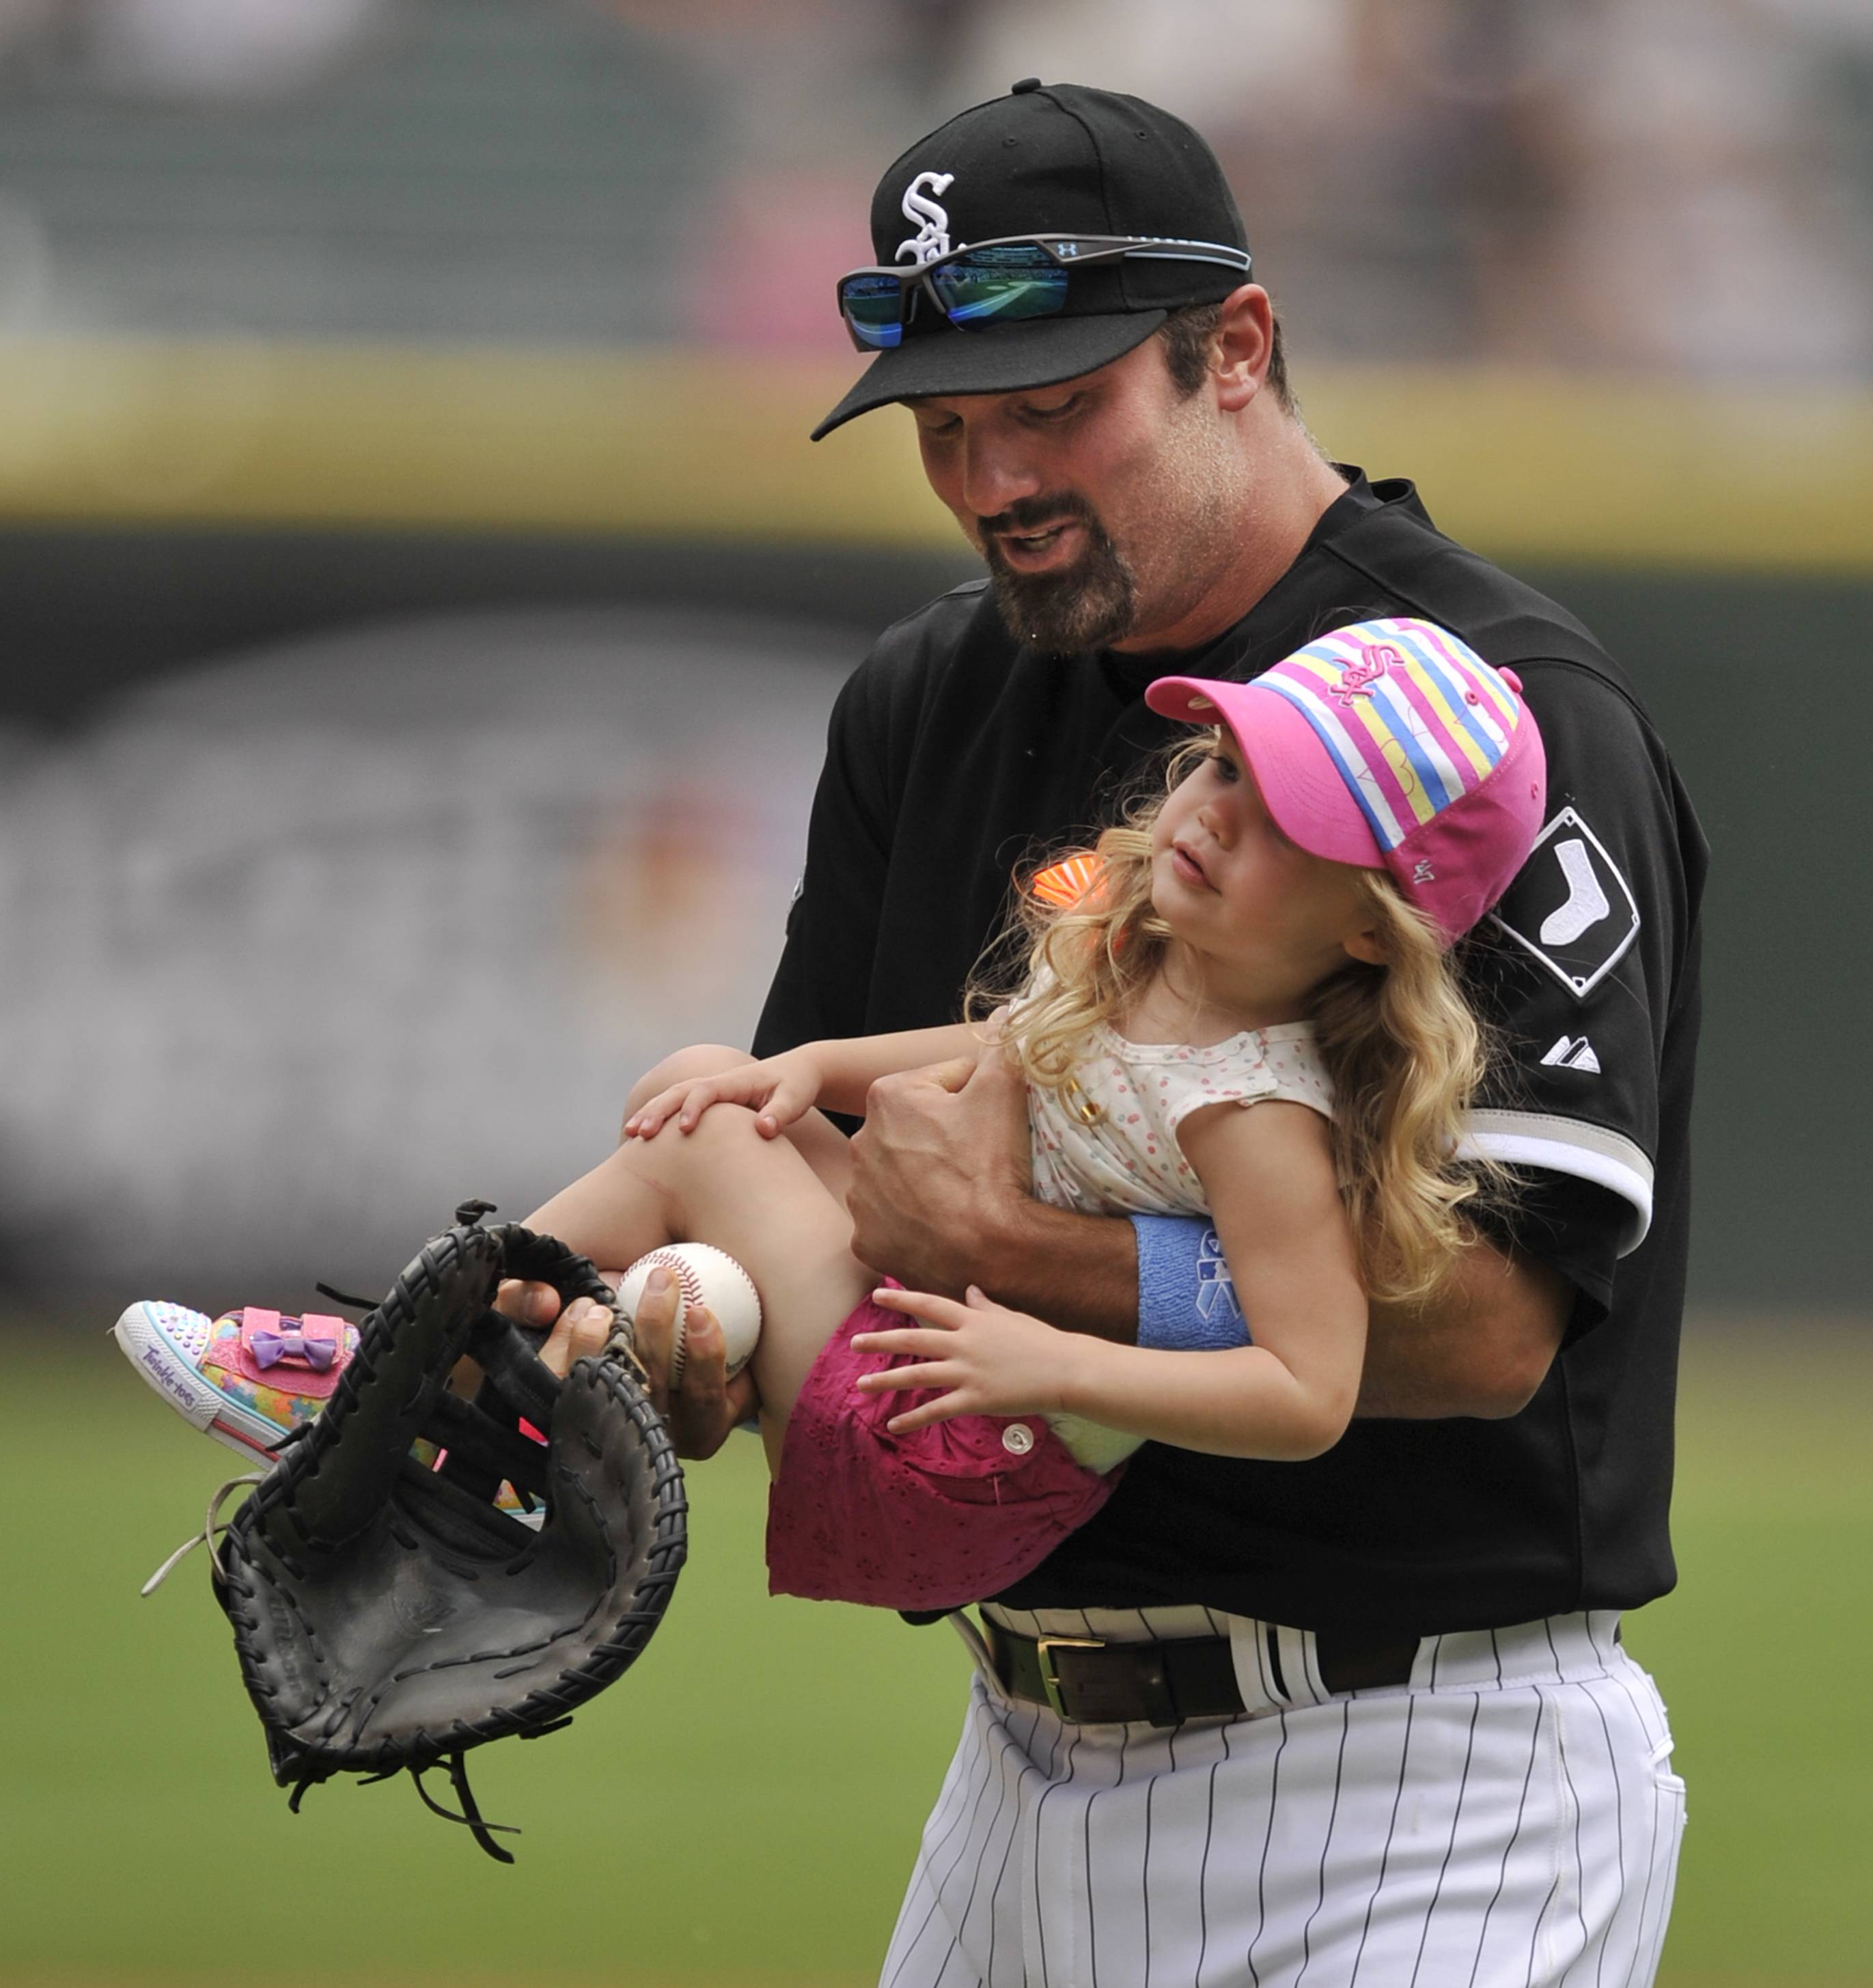 Amelia Konerko, 2, is carried off the field by her father, Chicago White Sox player Paul Konerko, after she threw out a ceremonial first pitch before a baseball game between the White Sox and the Kansas City Royals in Chicago, Sunday, June 15, 2014.